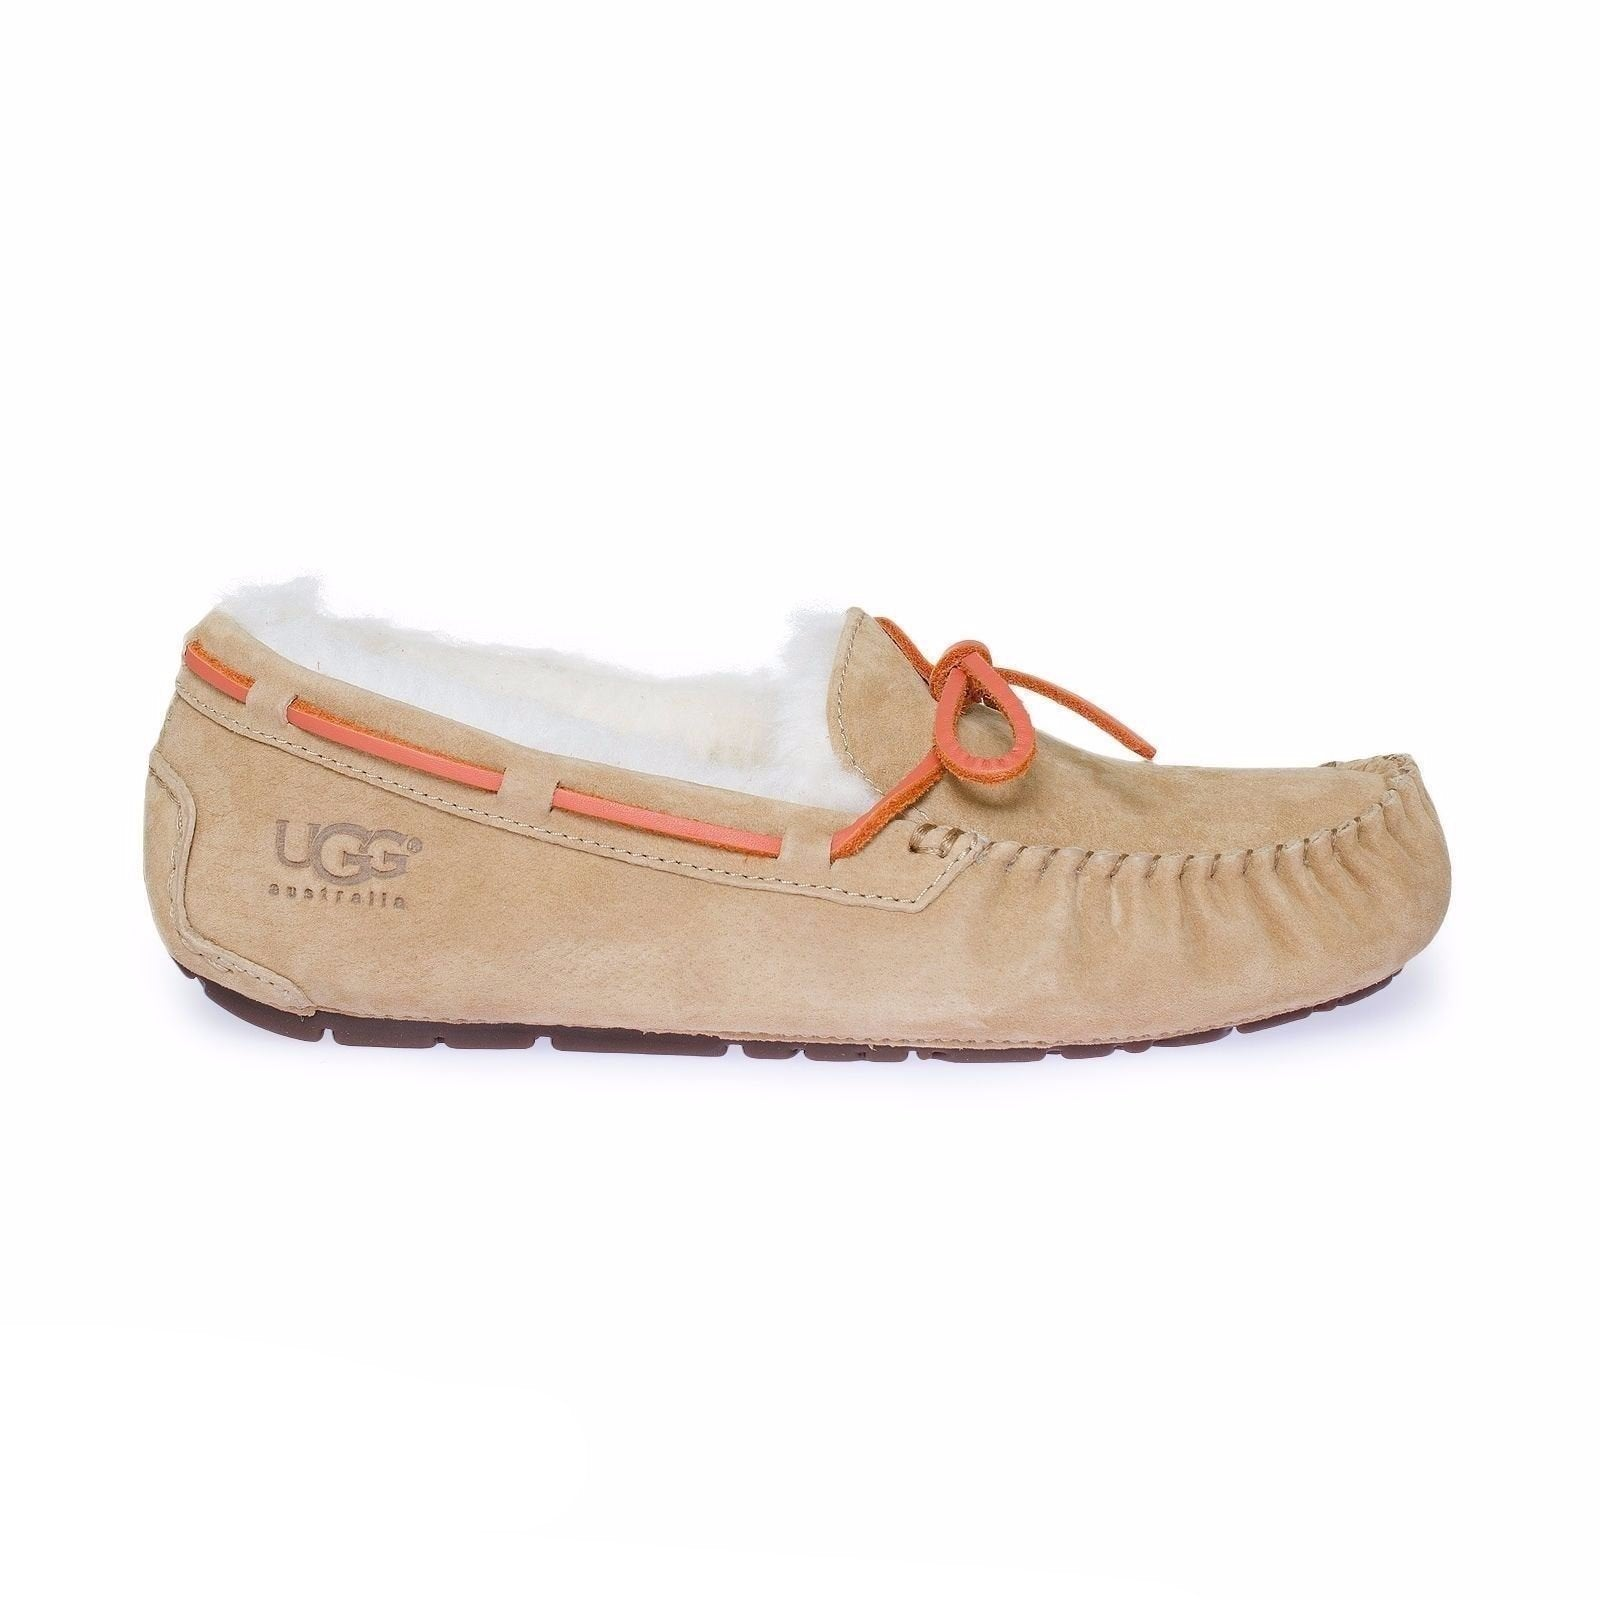 UGG Dakota Tawny Shoes